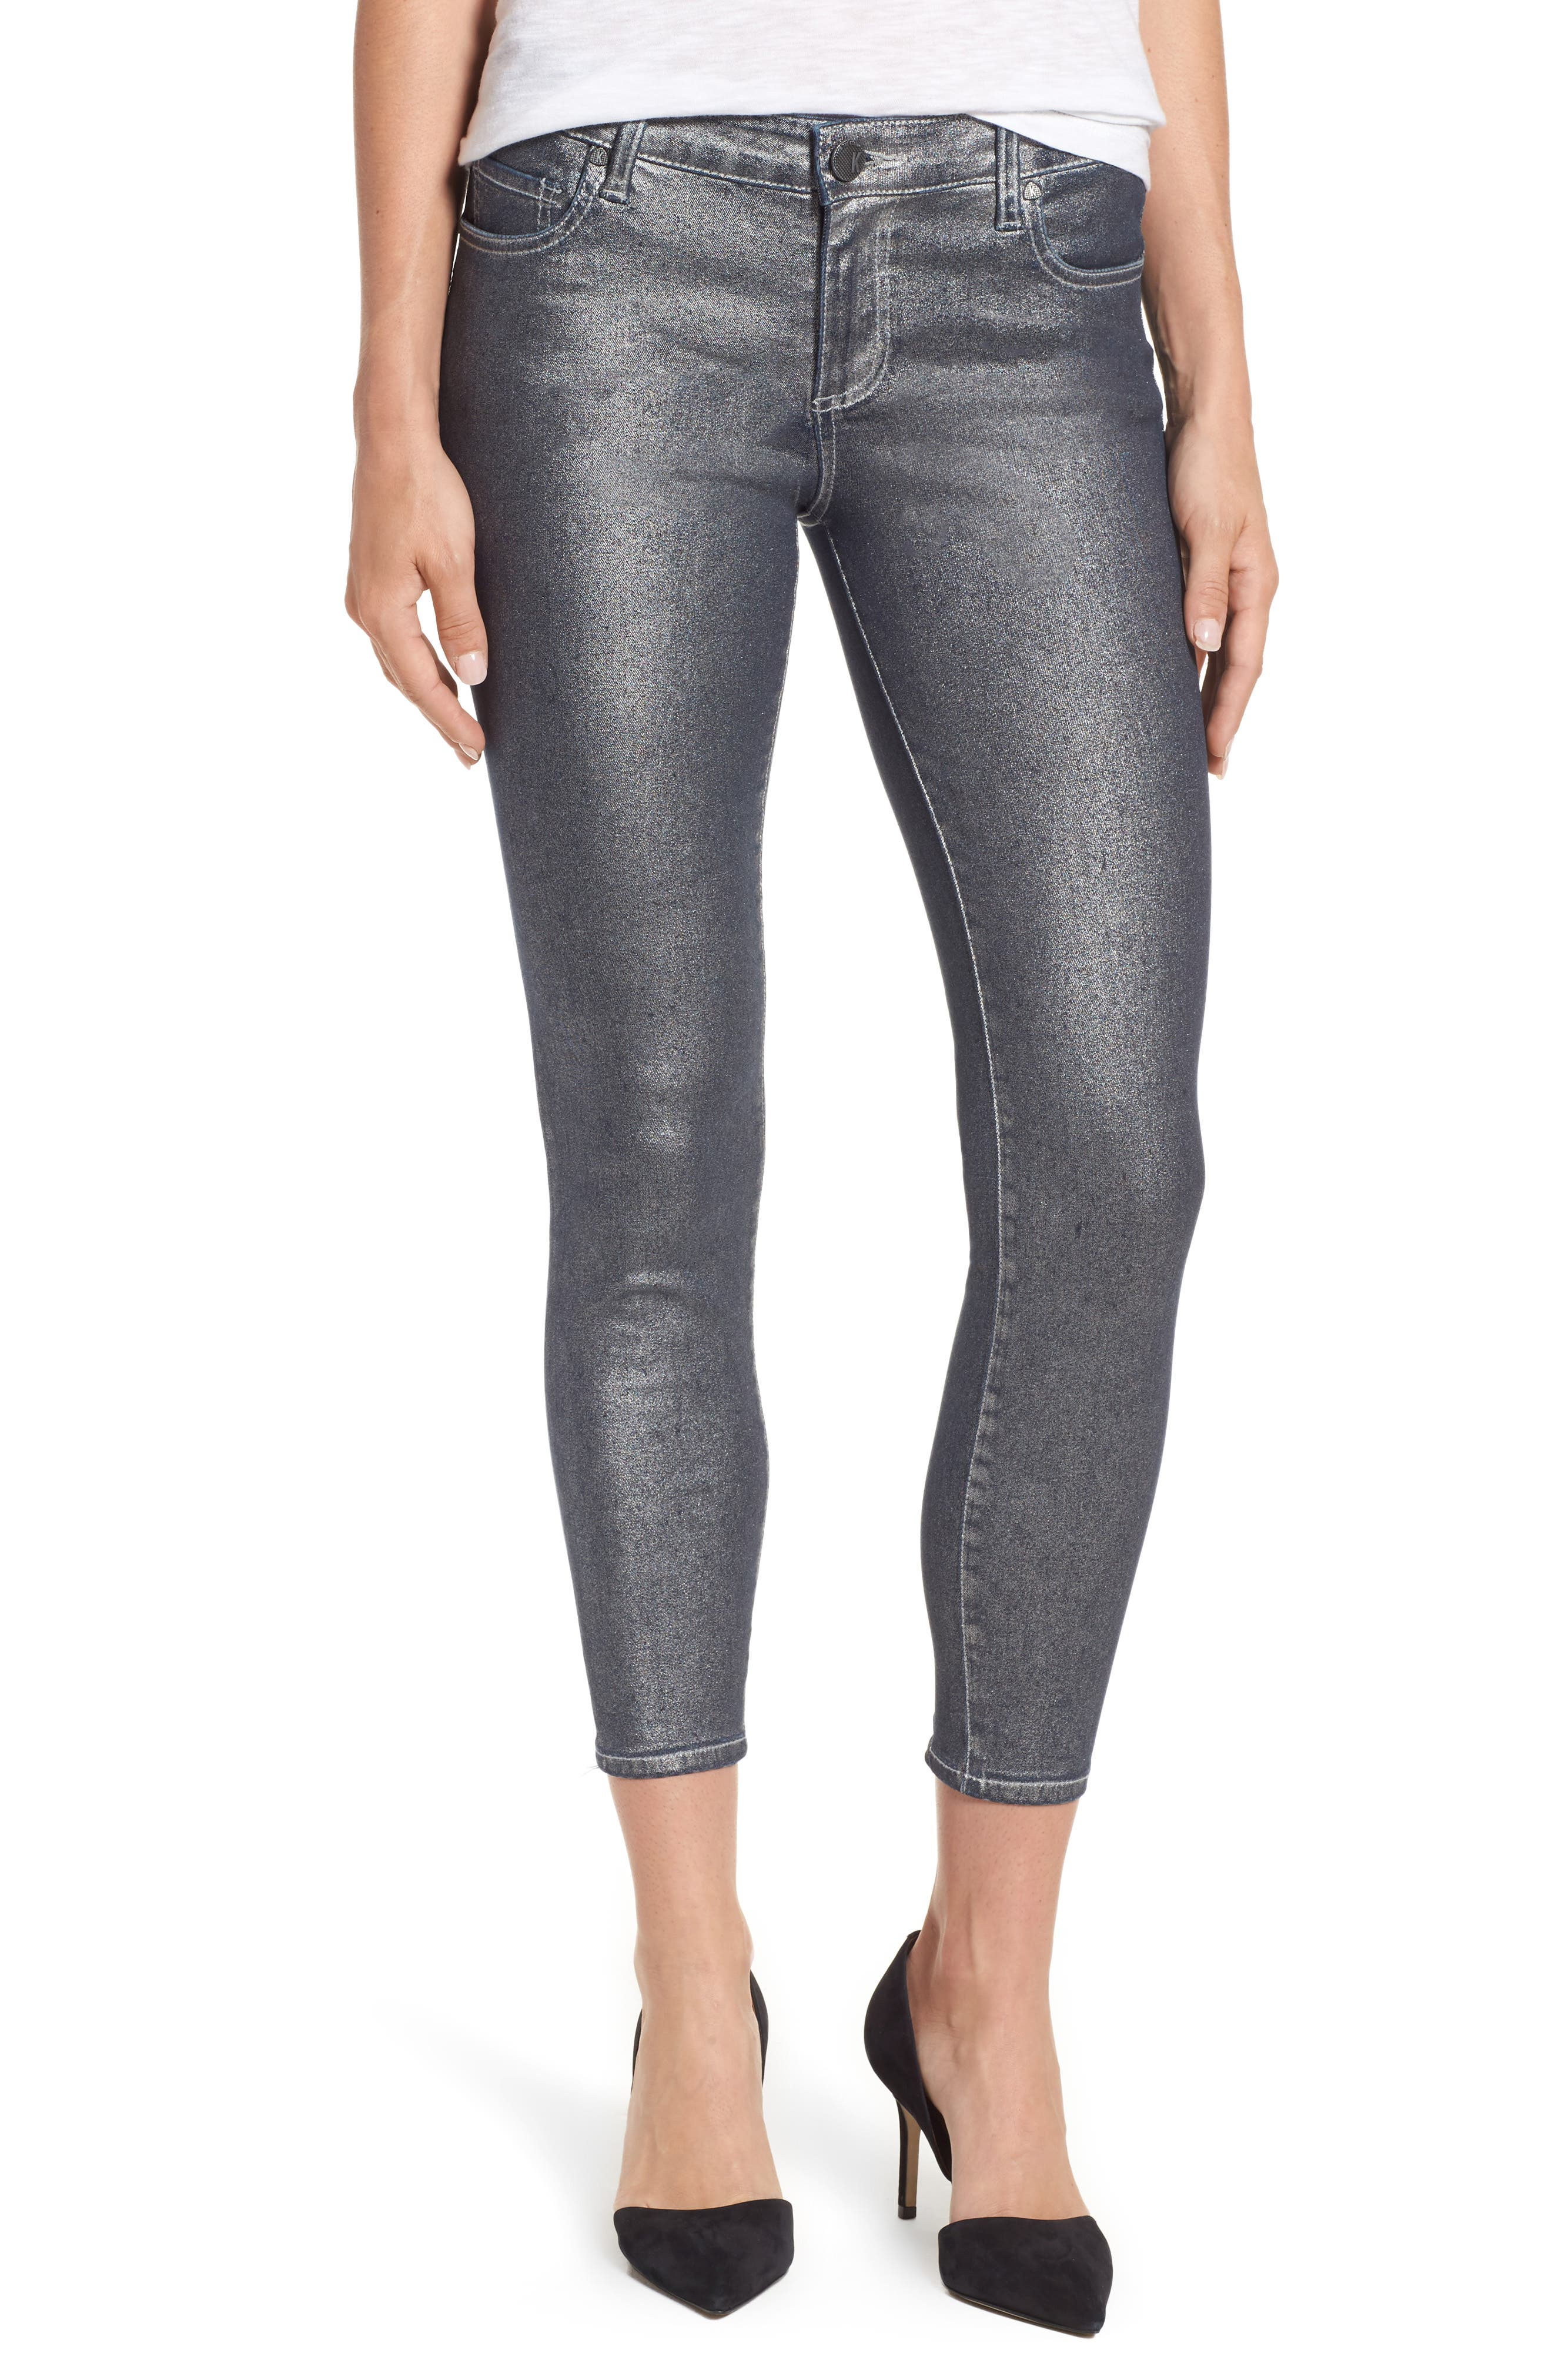 Alternate Image 1 Selected - KUT from the Kloth Connie Ankle Zipper Jeans (Silver) (Regular & Petite)